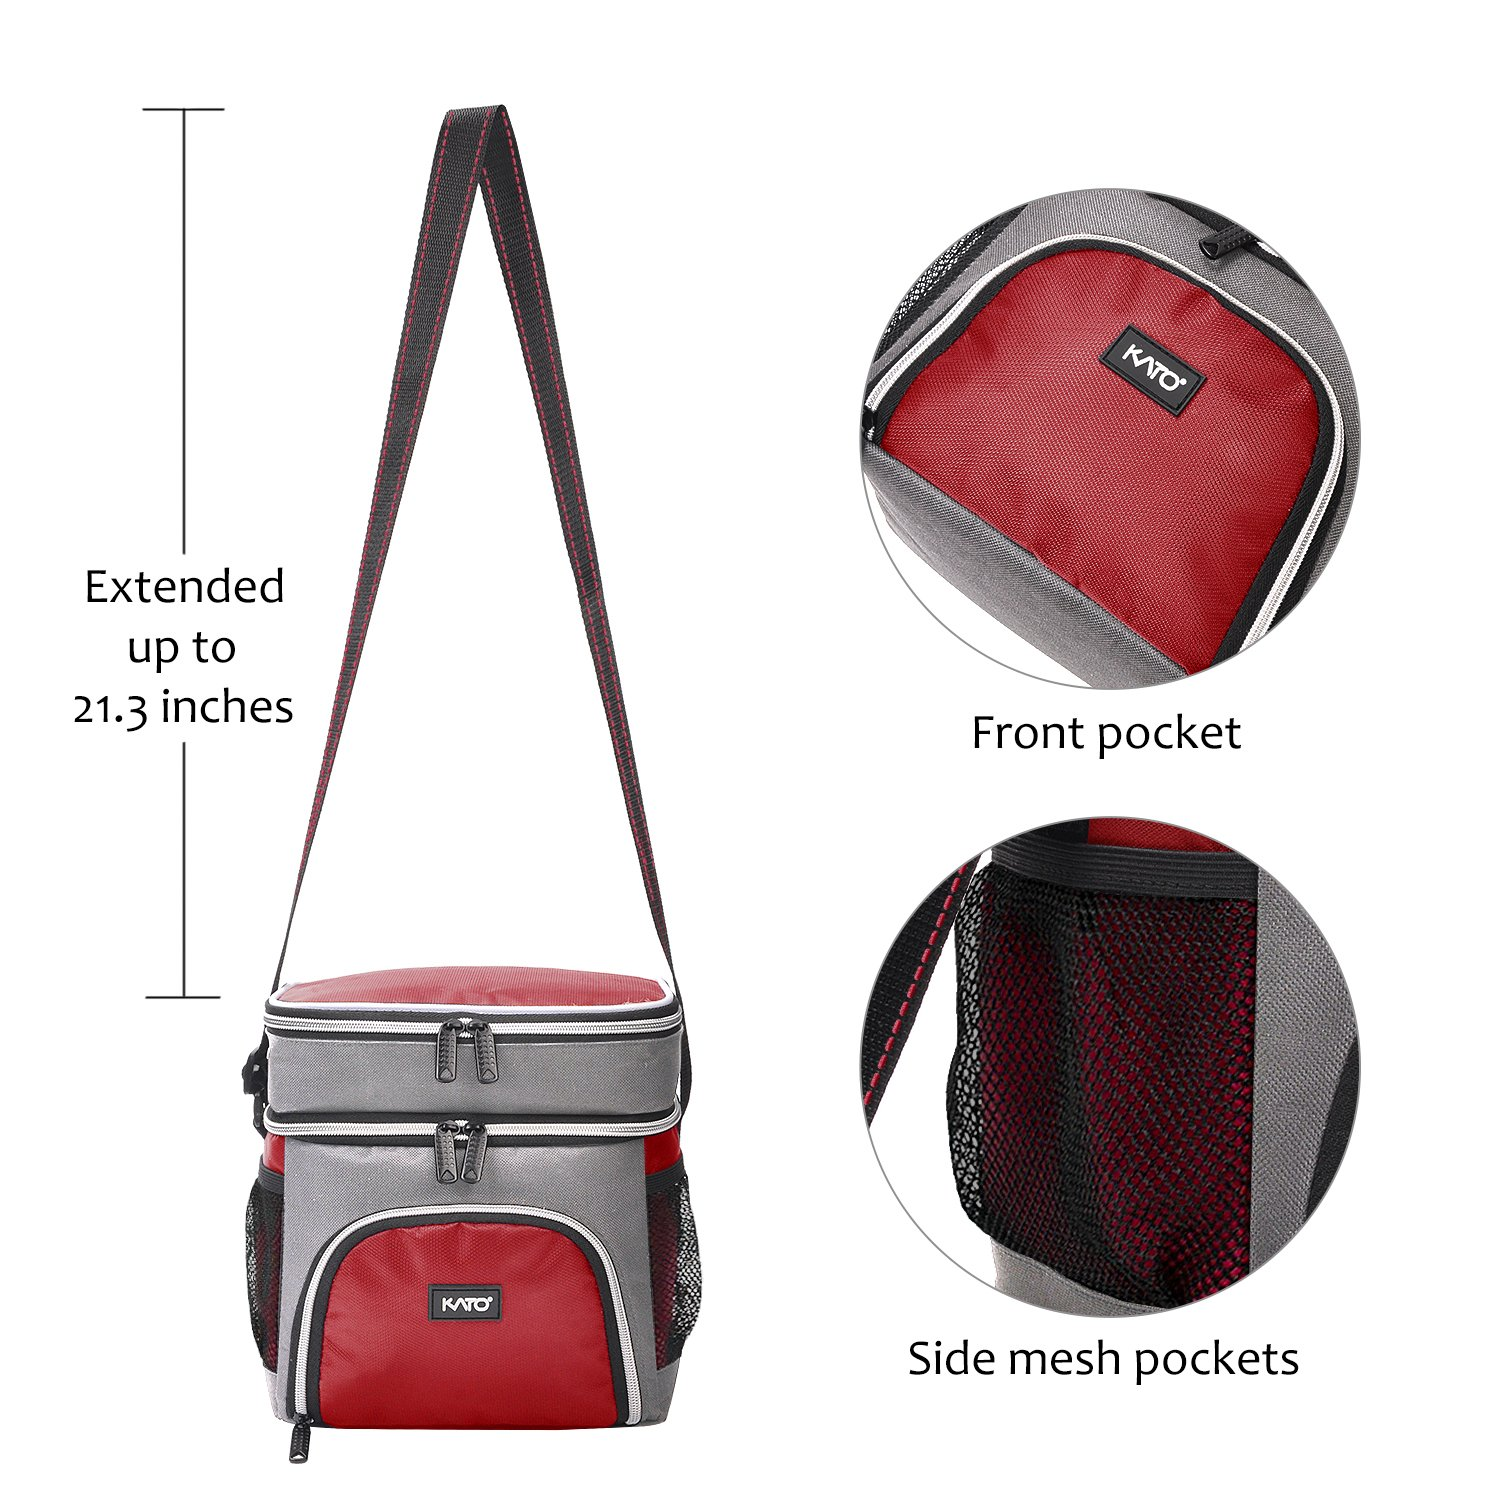 Insulated Lunch Bag for Women, Leakproof Dual Compartment Thermal Cooler Reusable Lunch Box Tote for Girls by Kato, Red